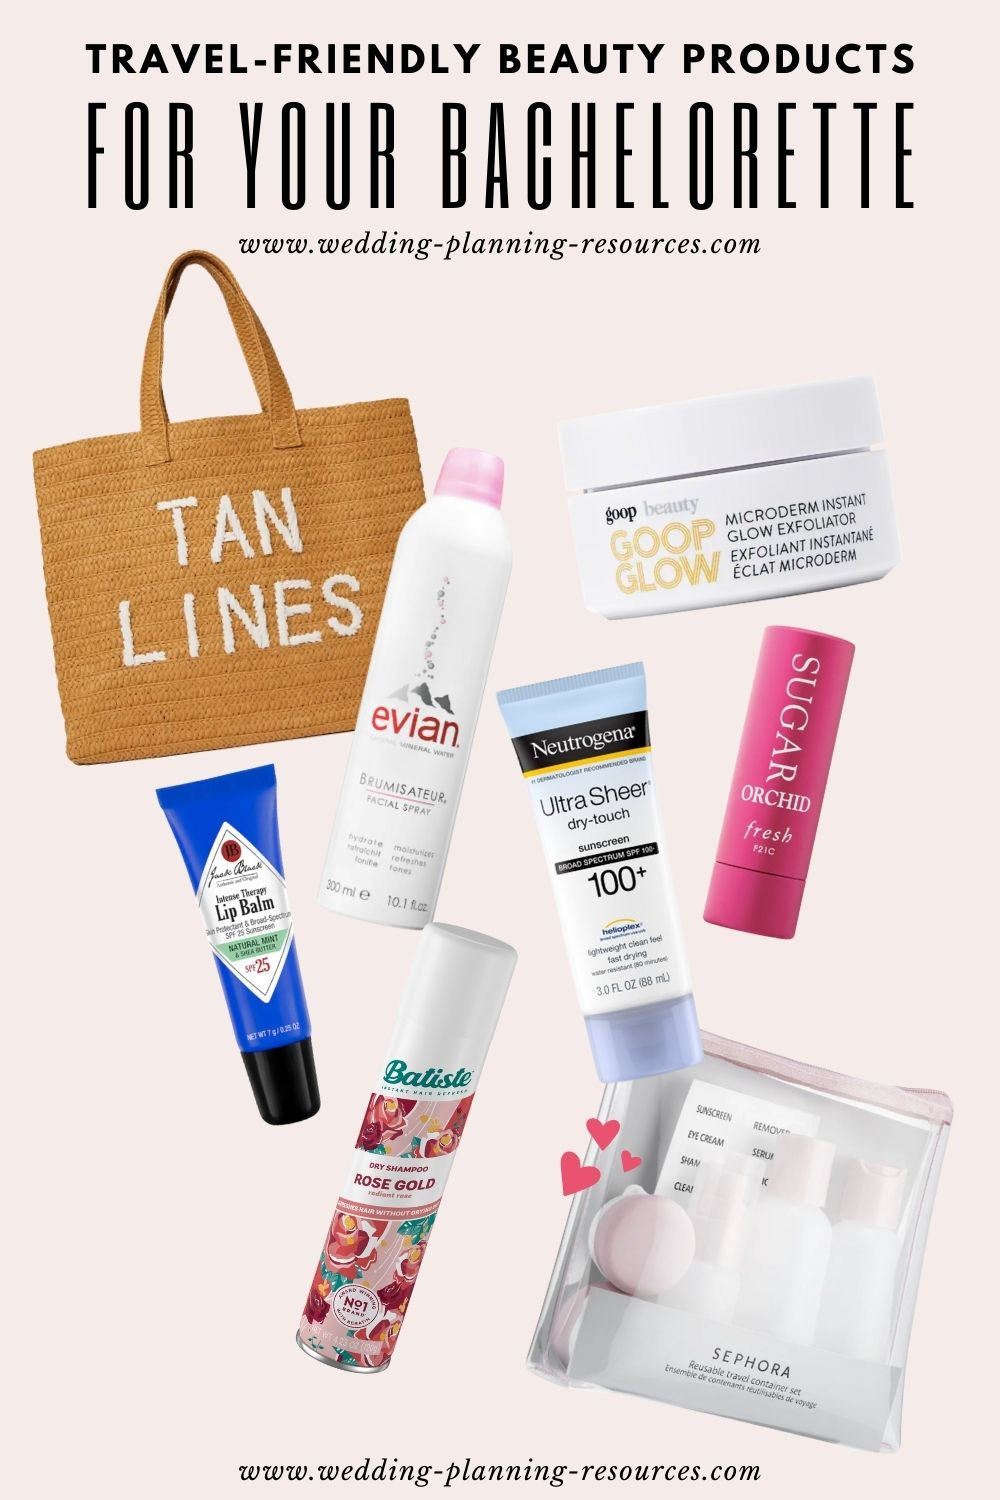 Travel-Friendly Beauty Products For Your Bachelorette